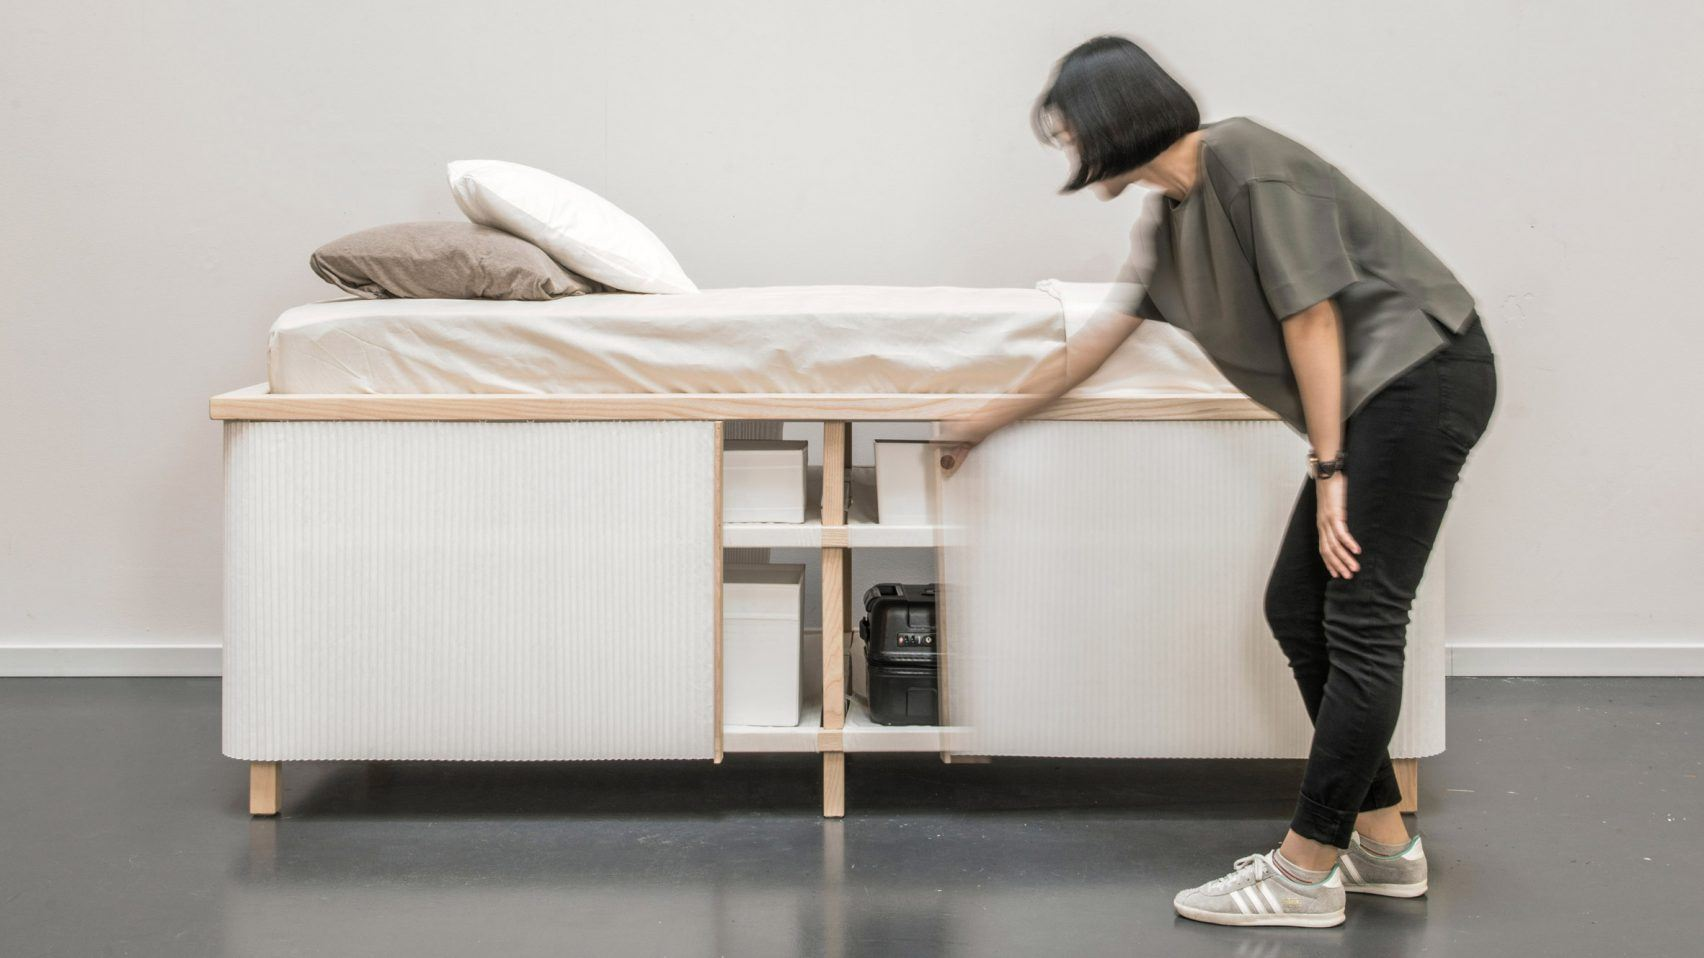 IGNANT-Design-Yesul-Jang-Tiny-Home-Bed-6